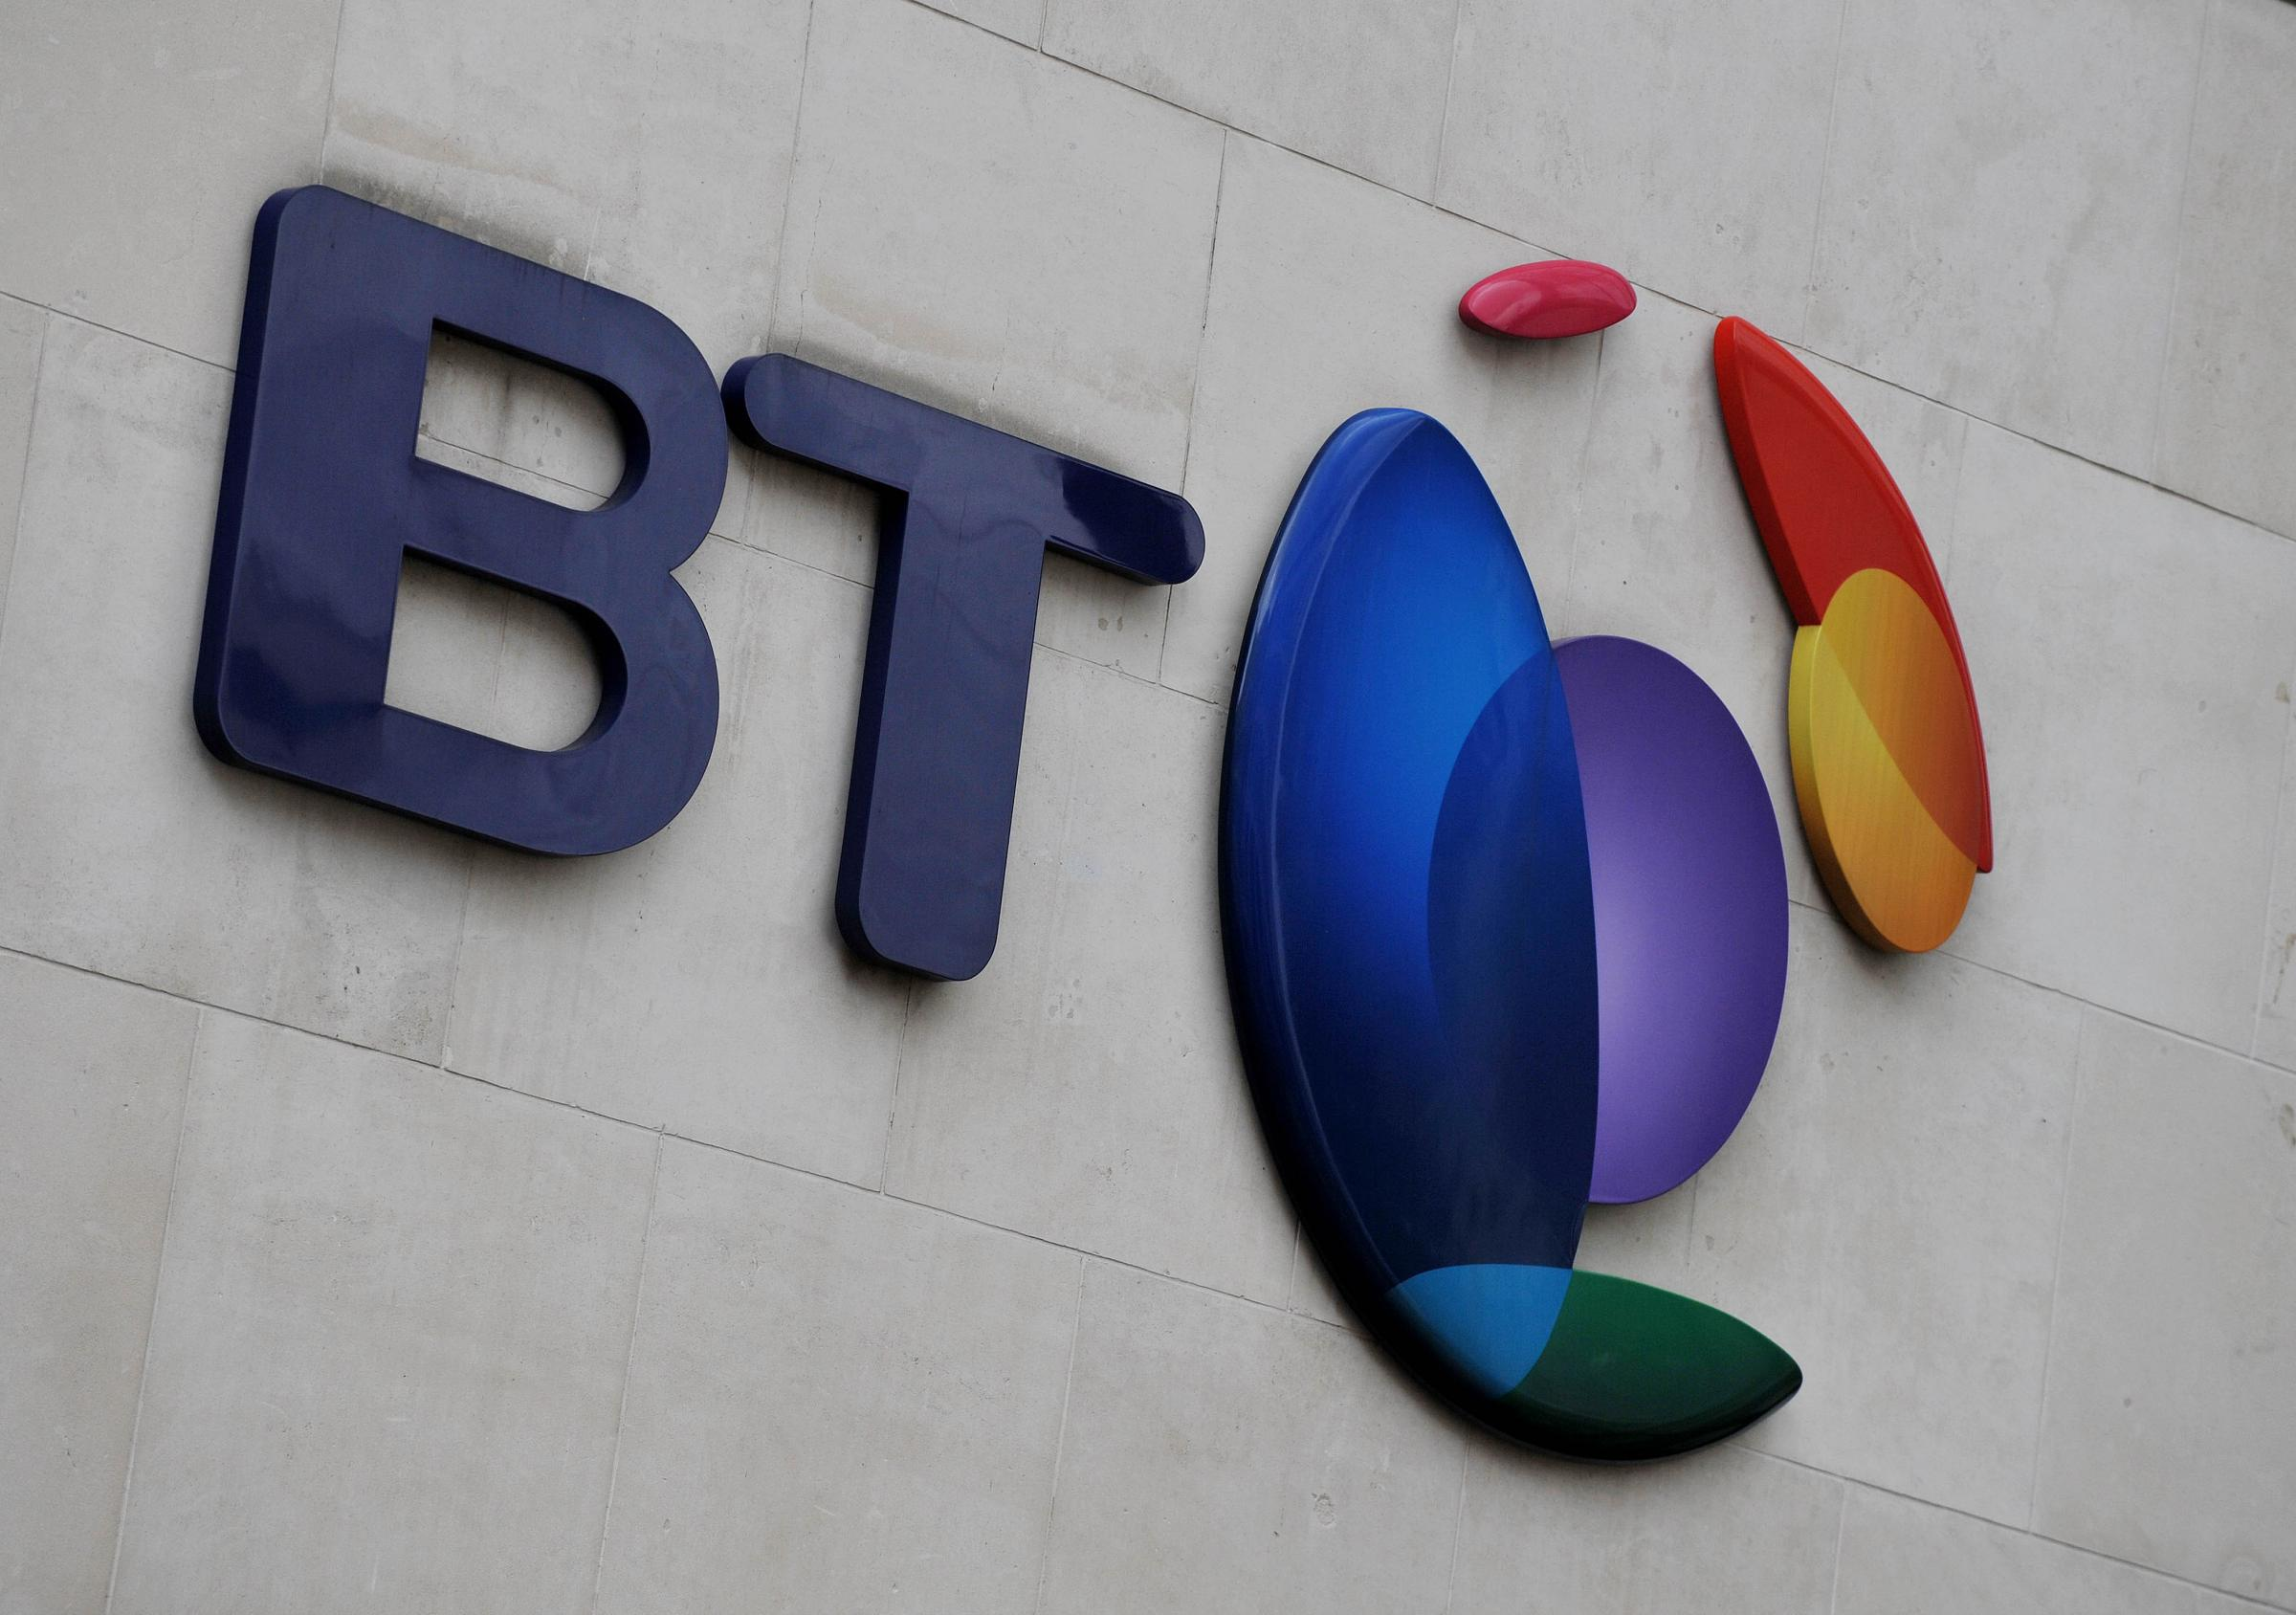 BT wants to recruit more female engineers